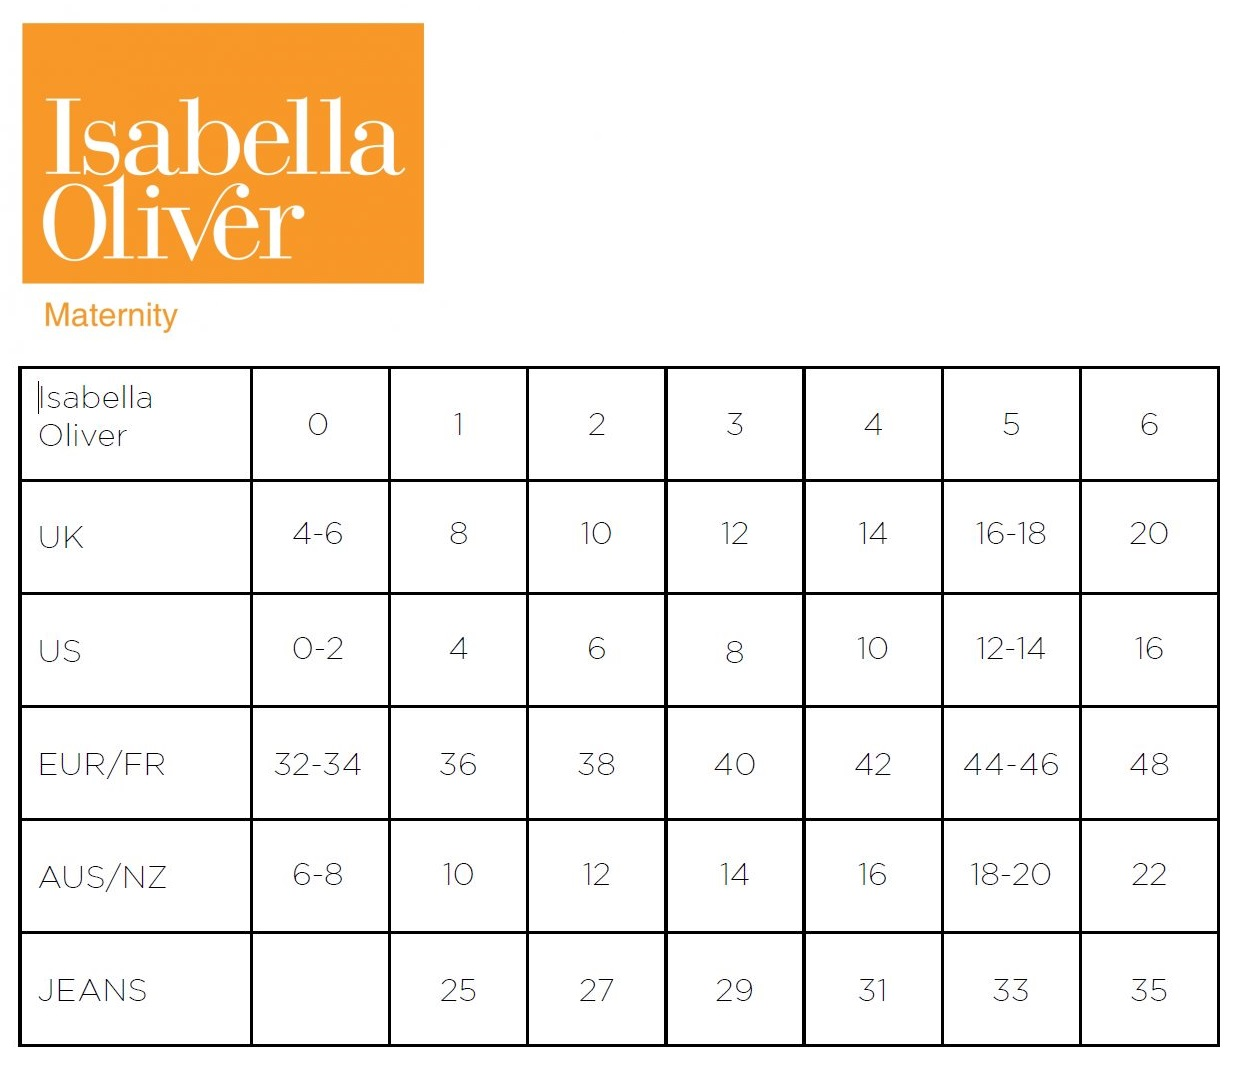 e1c2da2d5b708 Rosie Pope Maternity Size Chart Maternity Clothes Consignment Online.  isabella-oliver.jpg